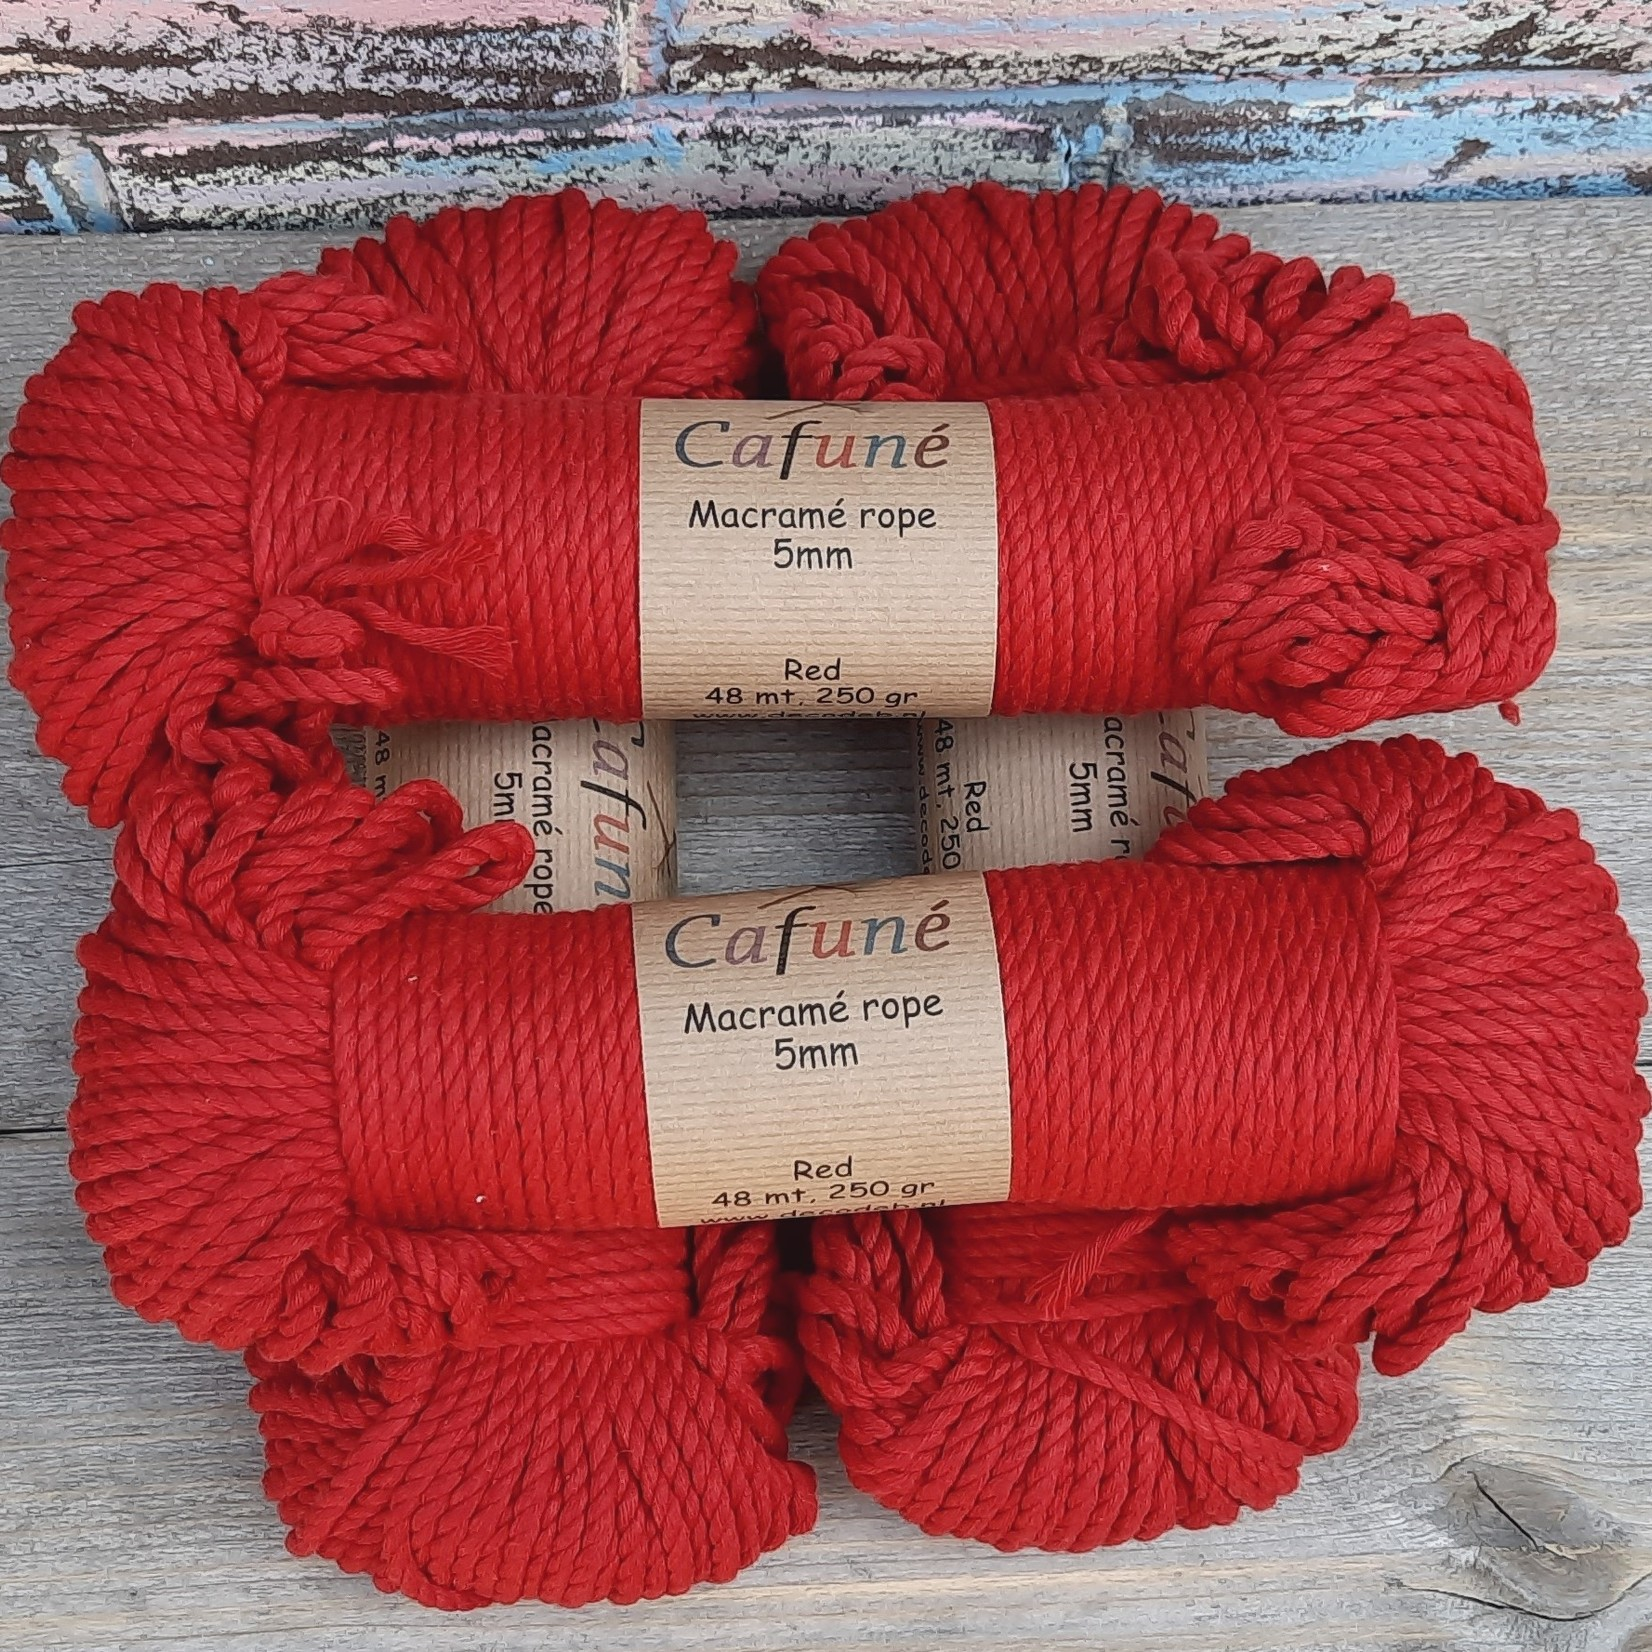 5mm Macrame touw Rood, double twisted